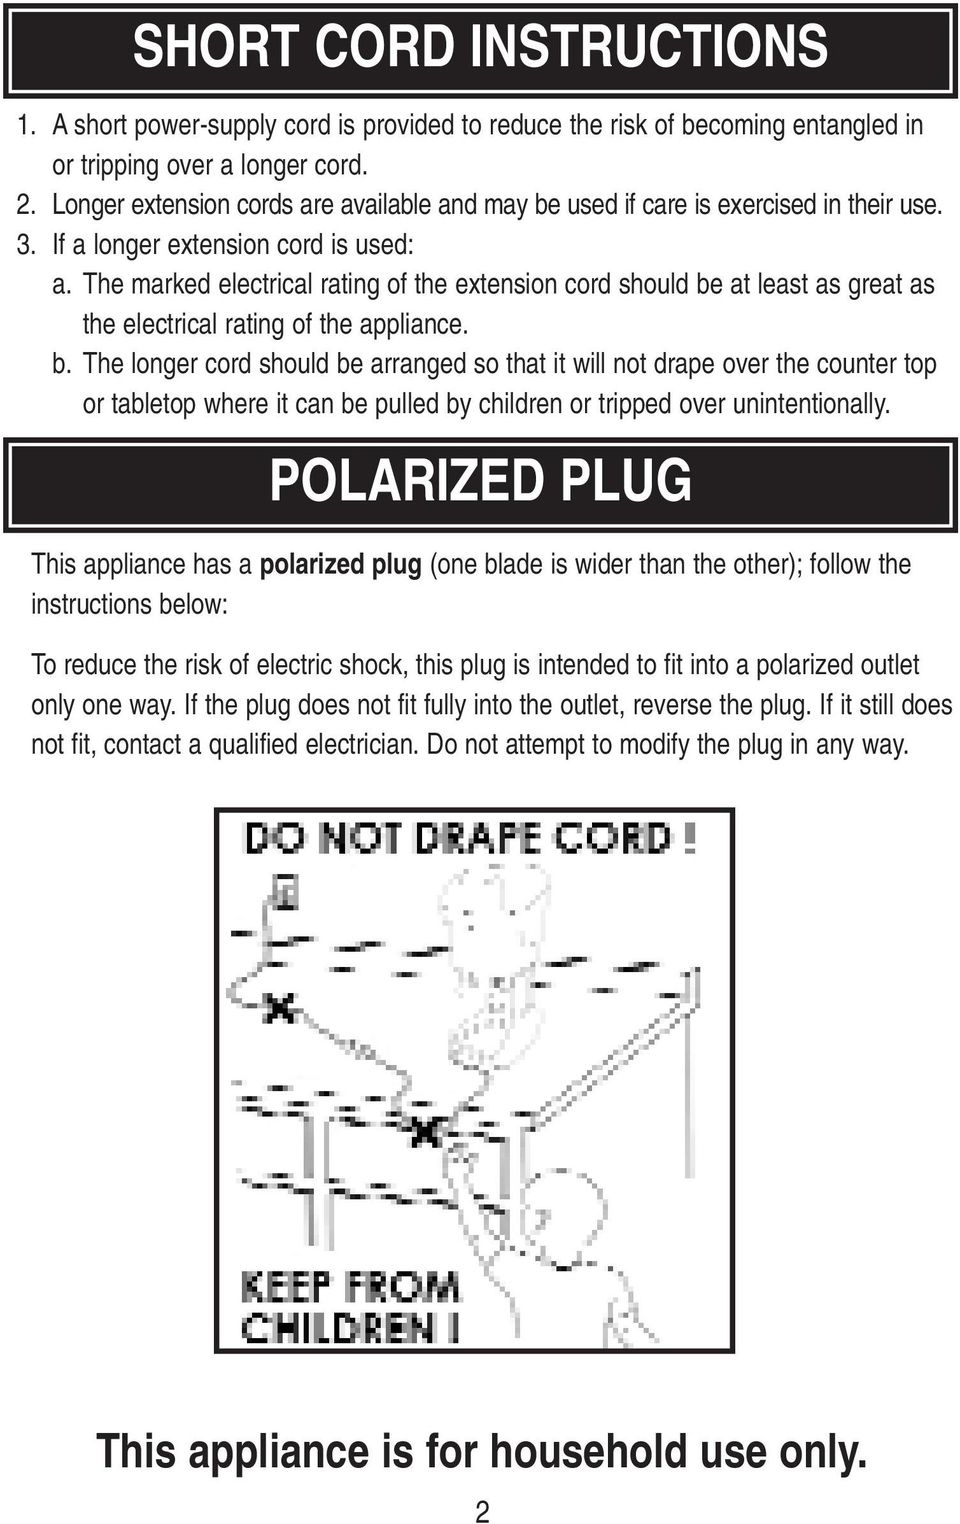 The marked electrical rating of the extension cord should be